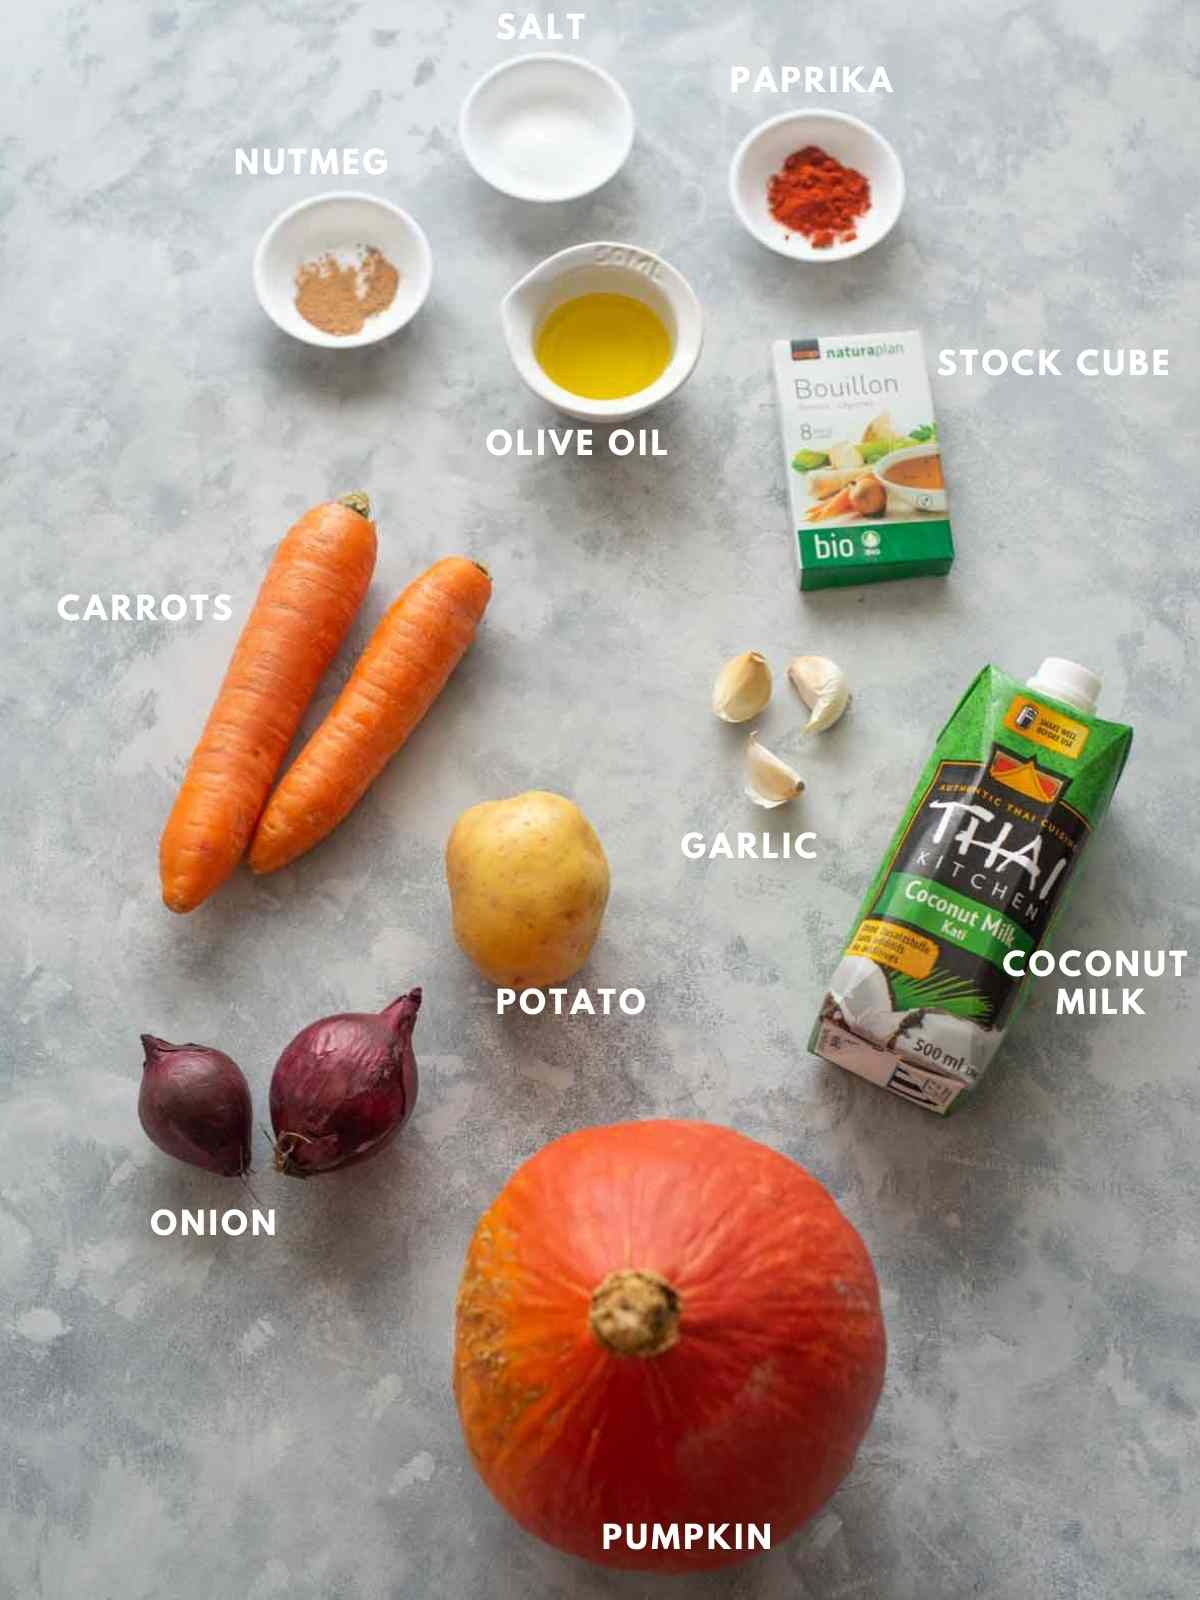 all ingredients for making pumpkin soup